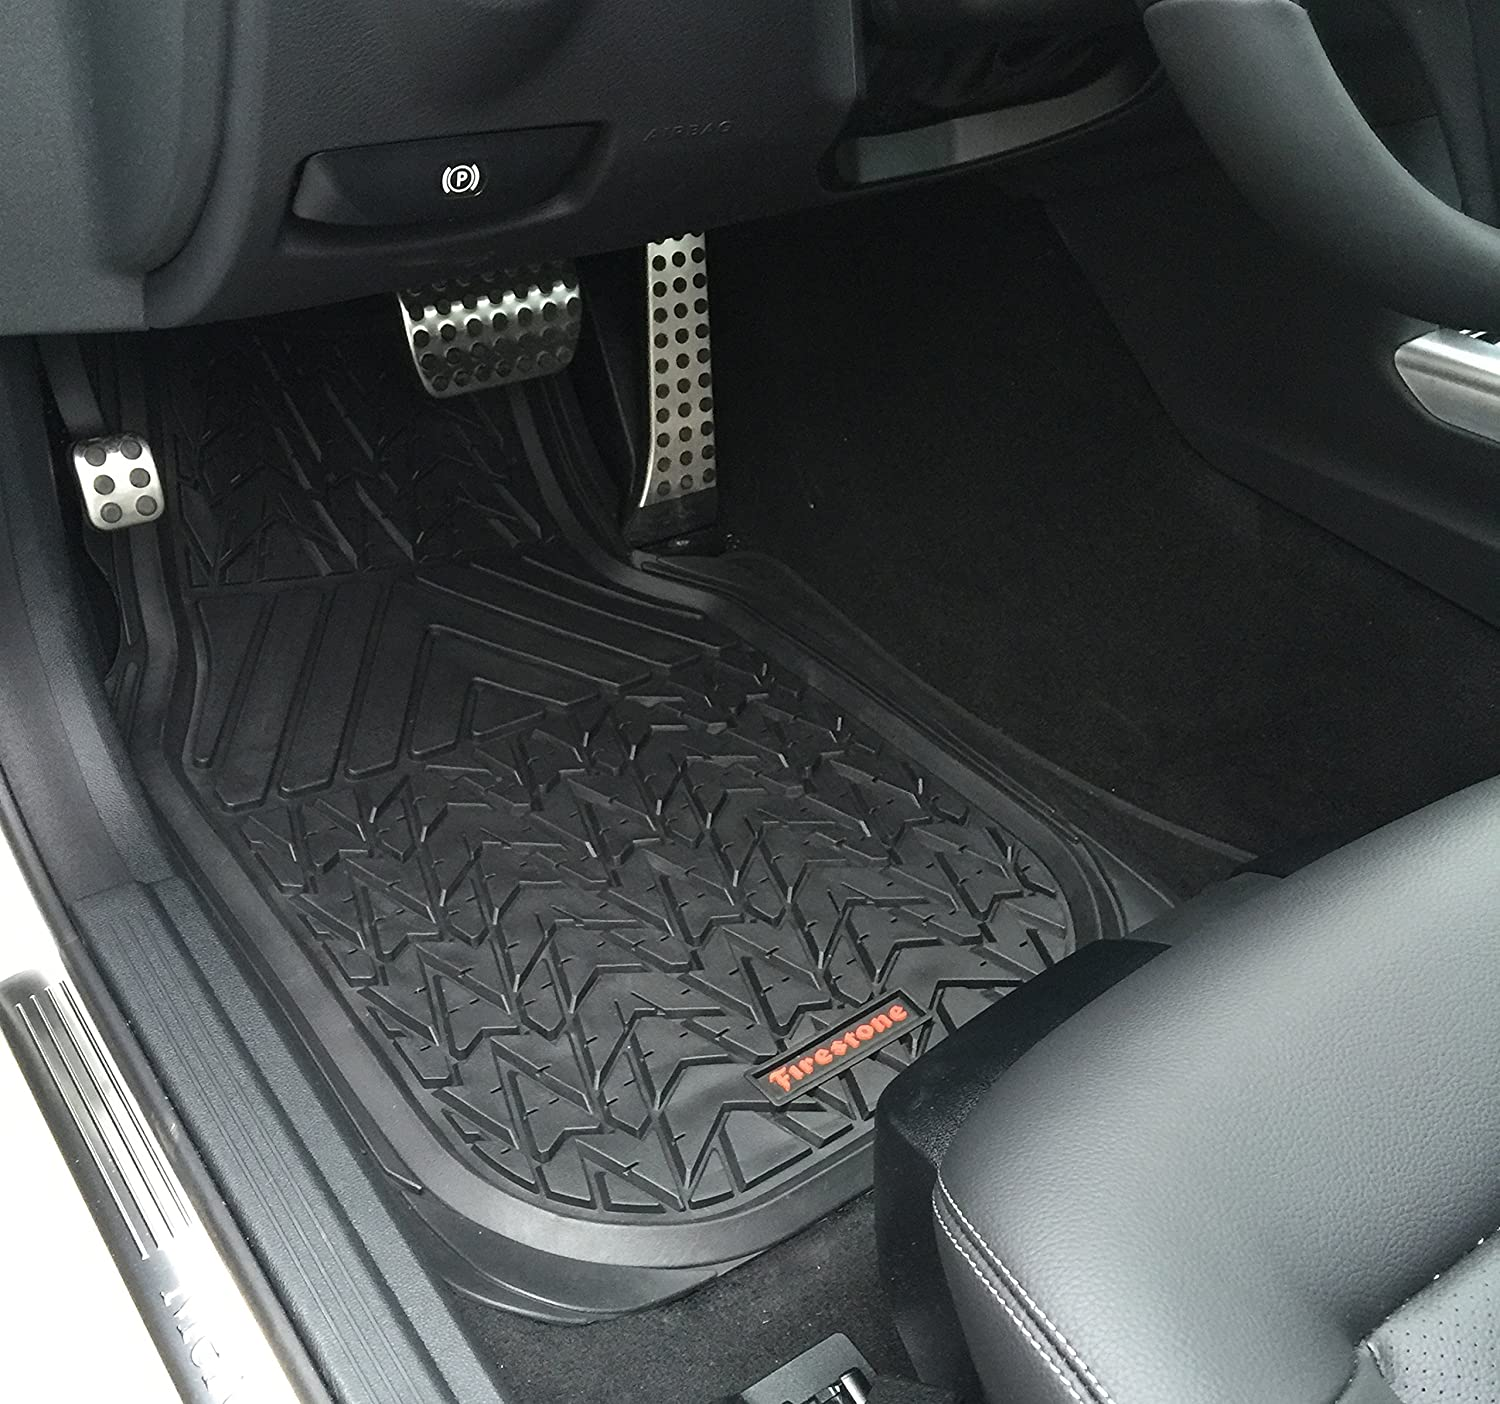 bhp accessories nomad for review team modifications floor cars rubber forum img product foot mats